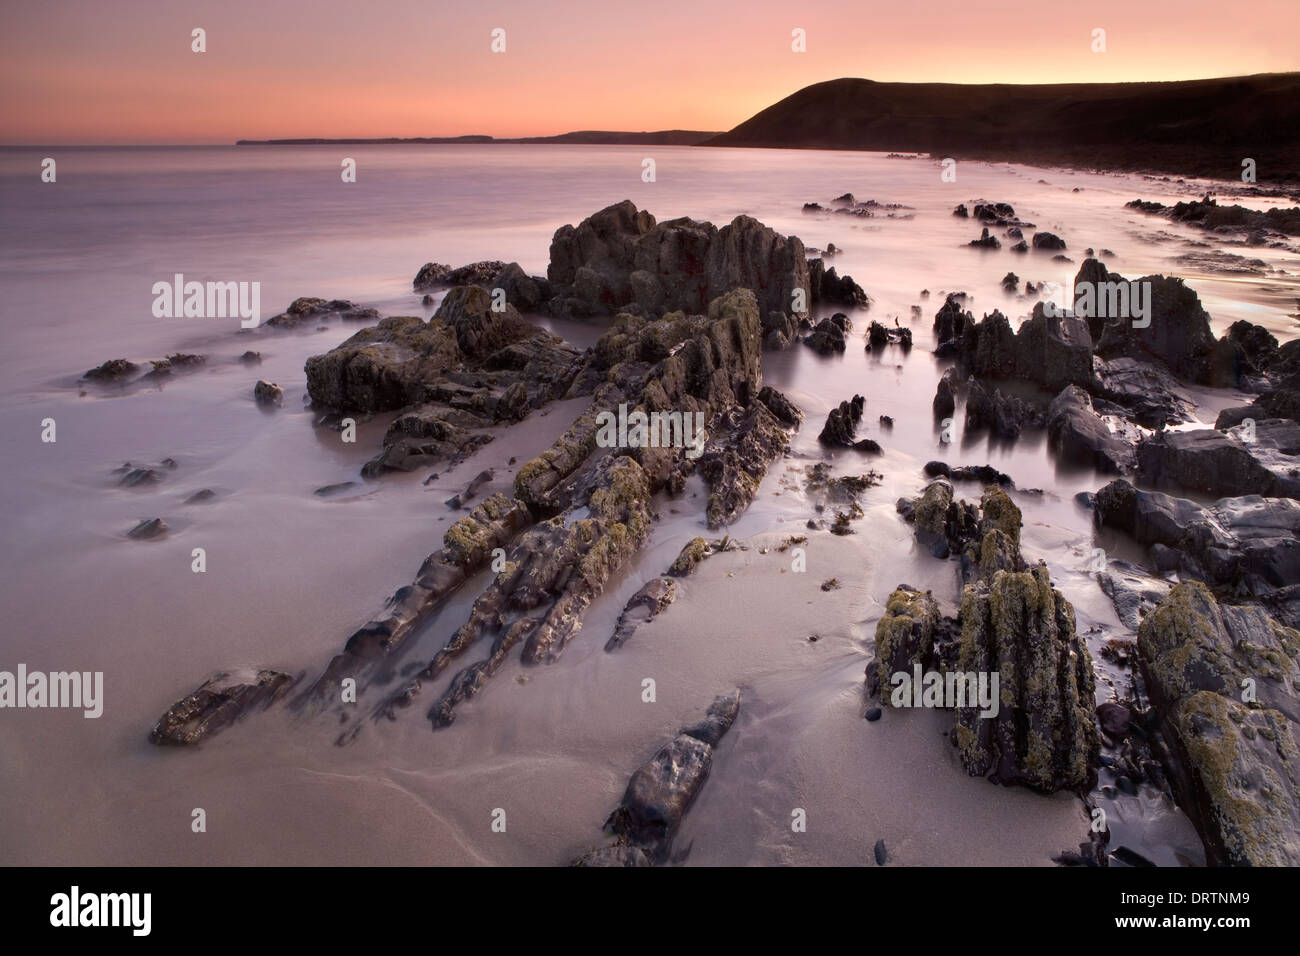 Jagged rocks sticking out of the sand at low tide during sunset on Manorbier beach, Pembrokeshire, South Wales, UK - Stock Image